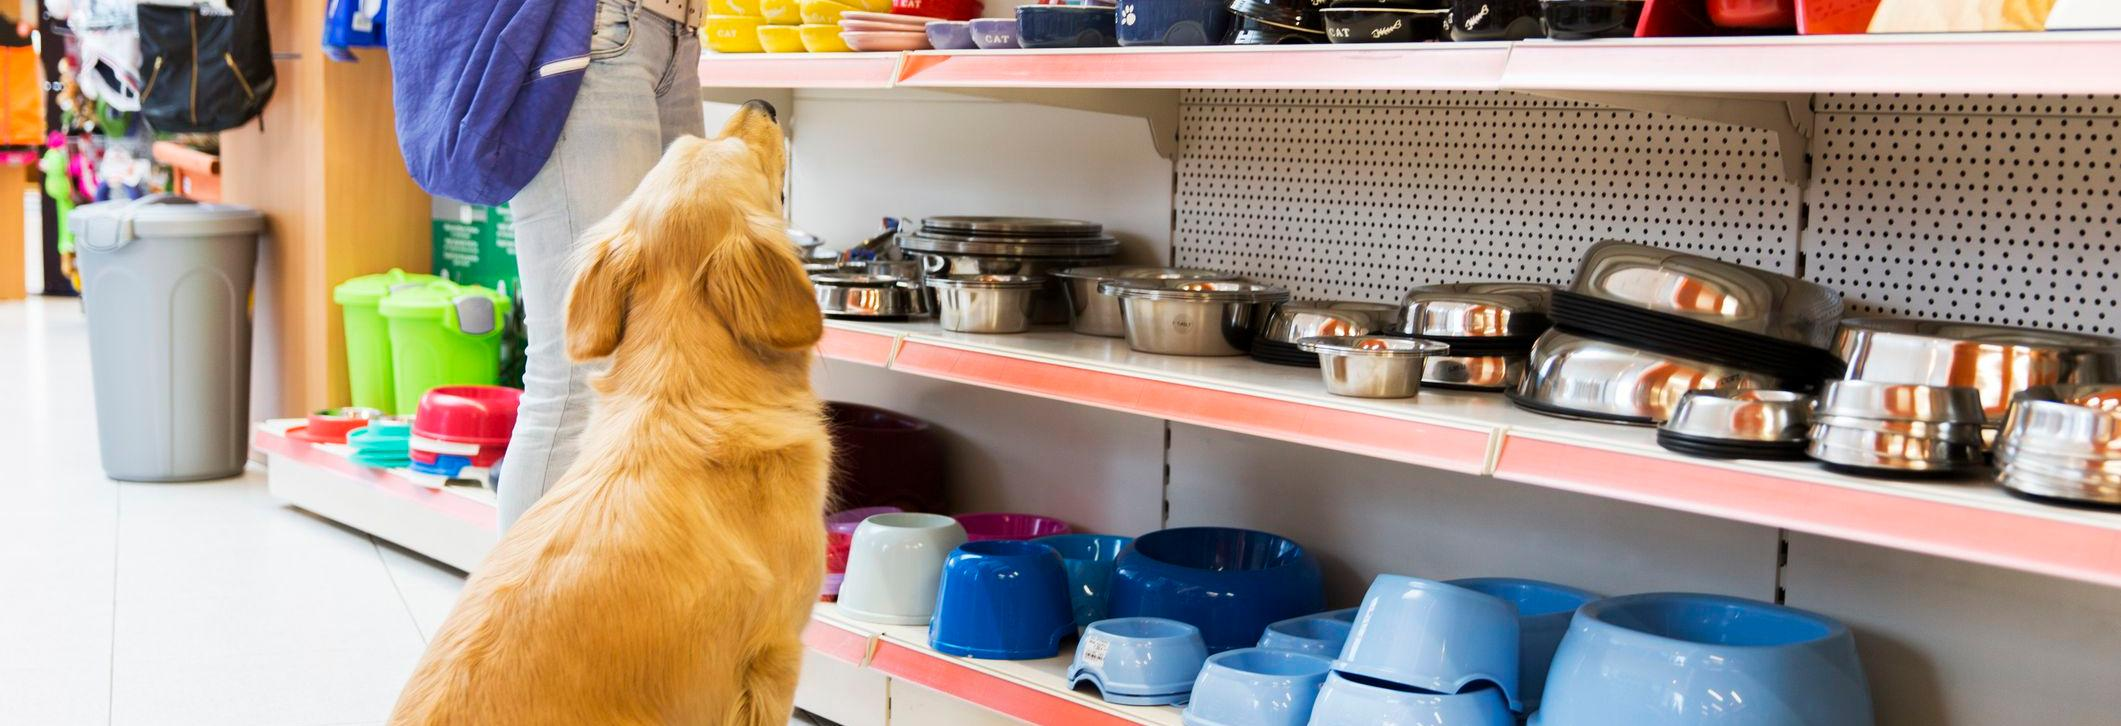 it's all about pets pet store food supplies small animals